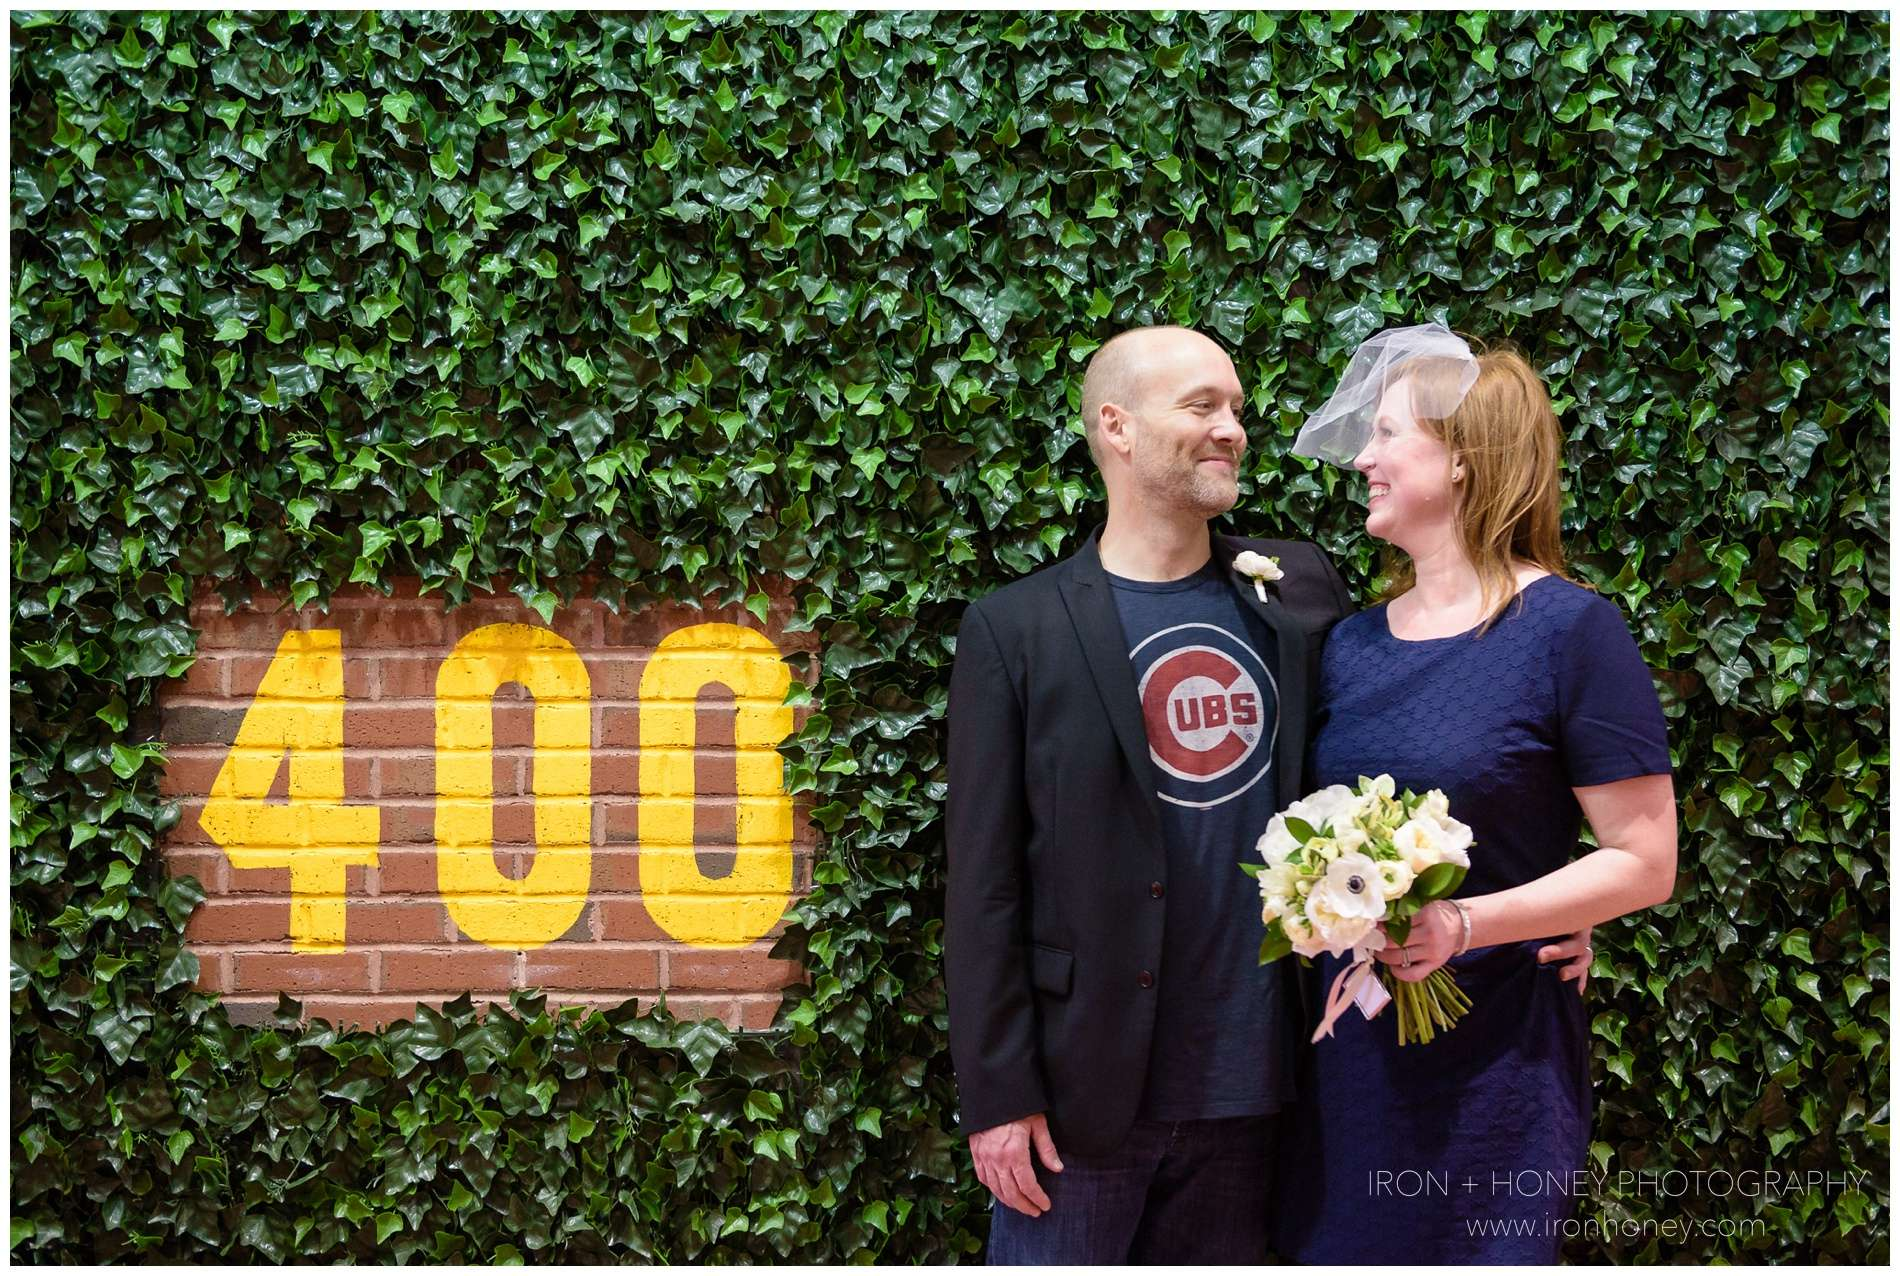 cubs, wrigley field, white sox, wedding, elopement, reception, celebration, party, wedding photography, wedding photographer, elopement photographer, chicago, illinois, elopement photography,